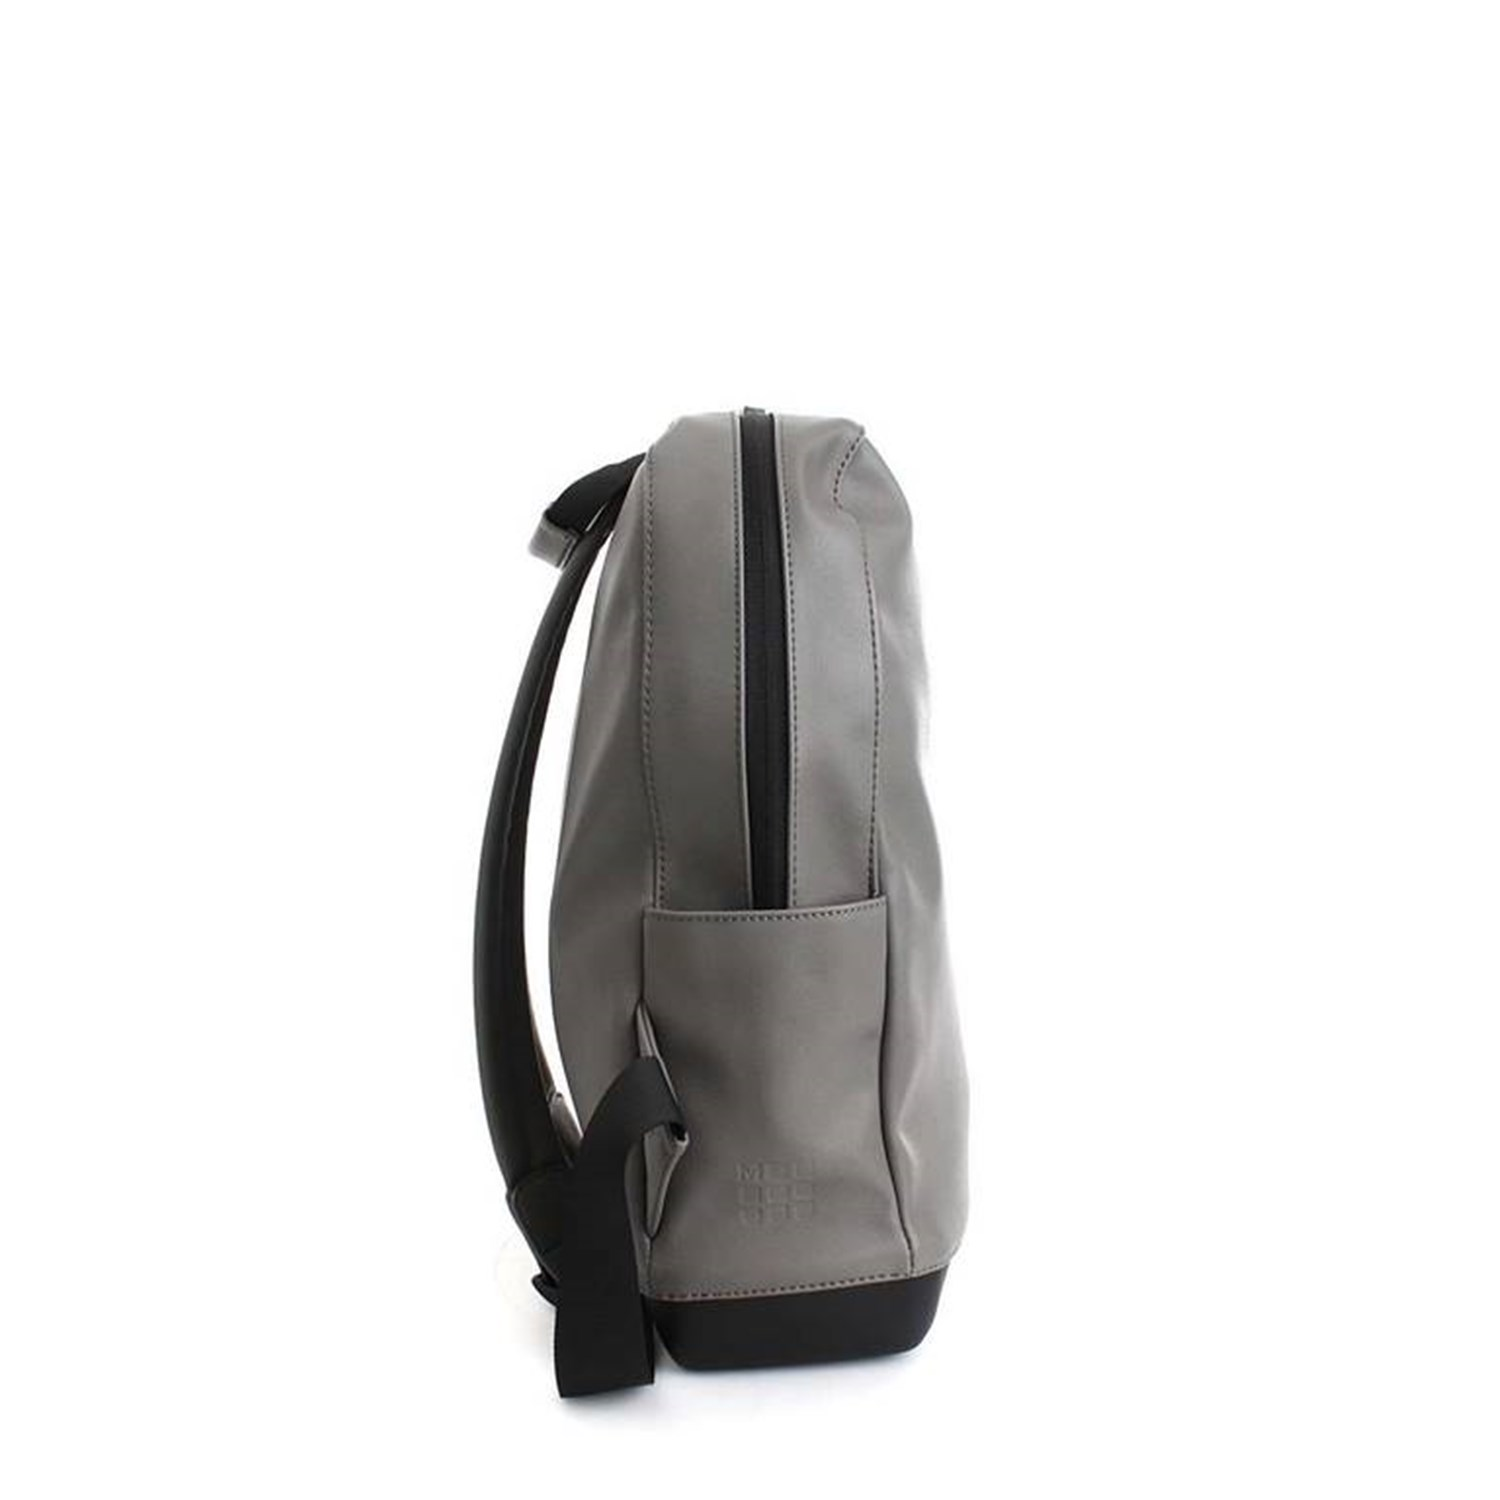 Moleskine Bags Accessories Backpacks GREY 2853590